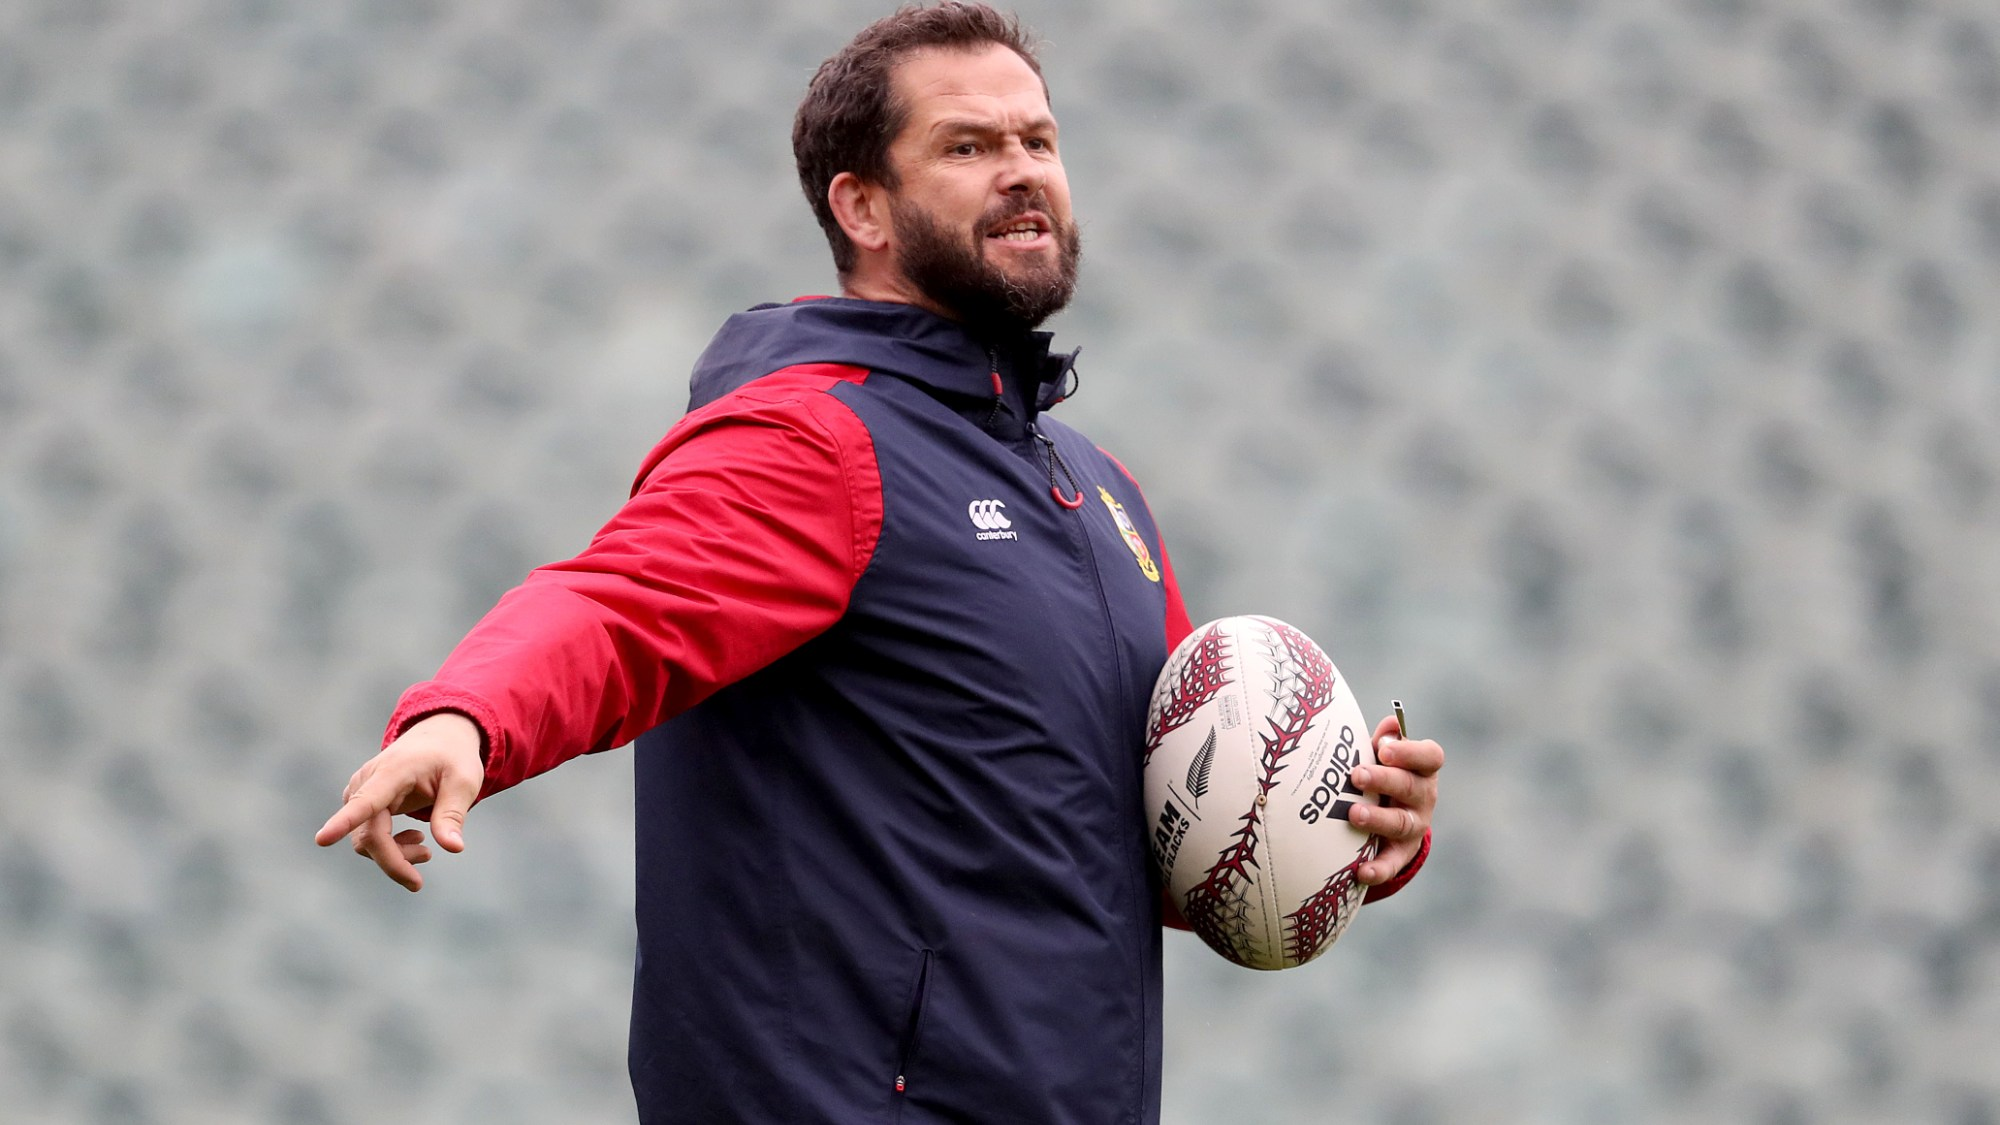 Farrell to take over as Ireland Coach after 2019 Rugby World Cup